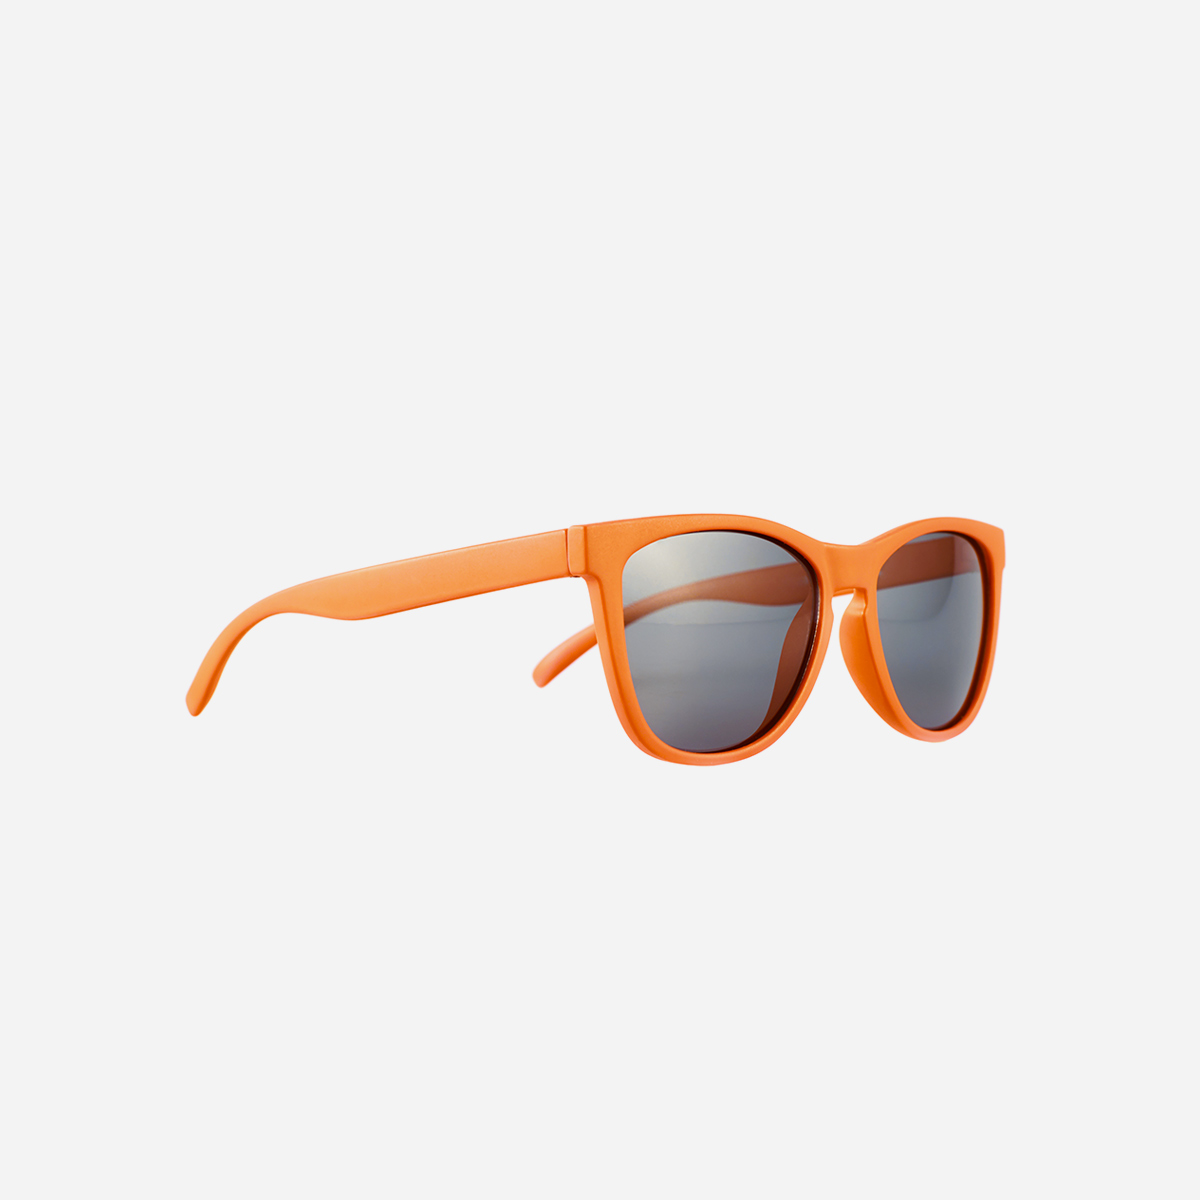 Orange-sun-glasses-isolated-over-the-white-background